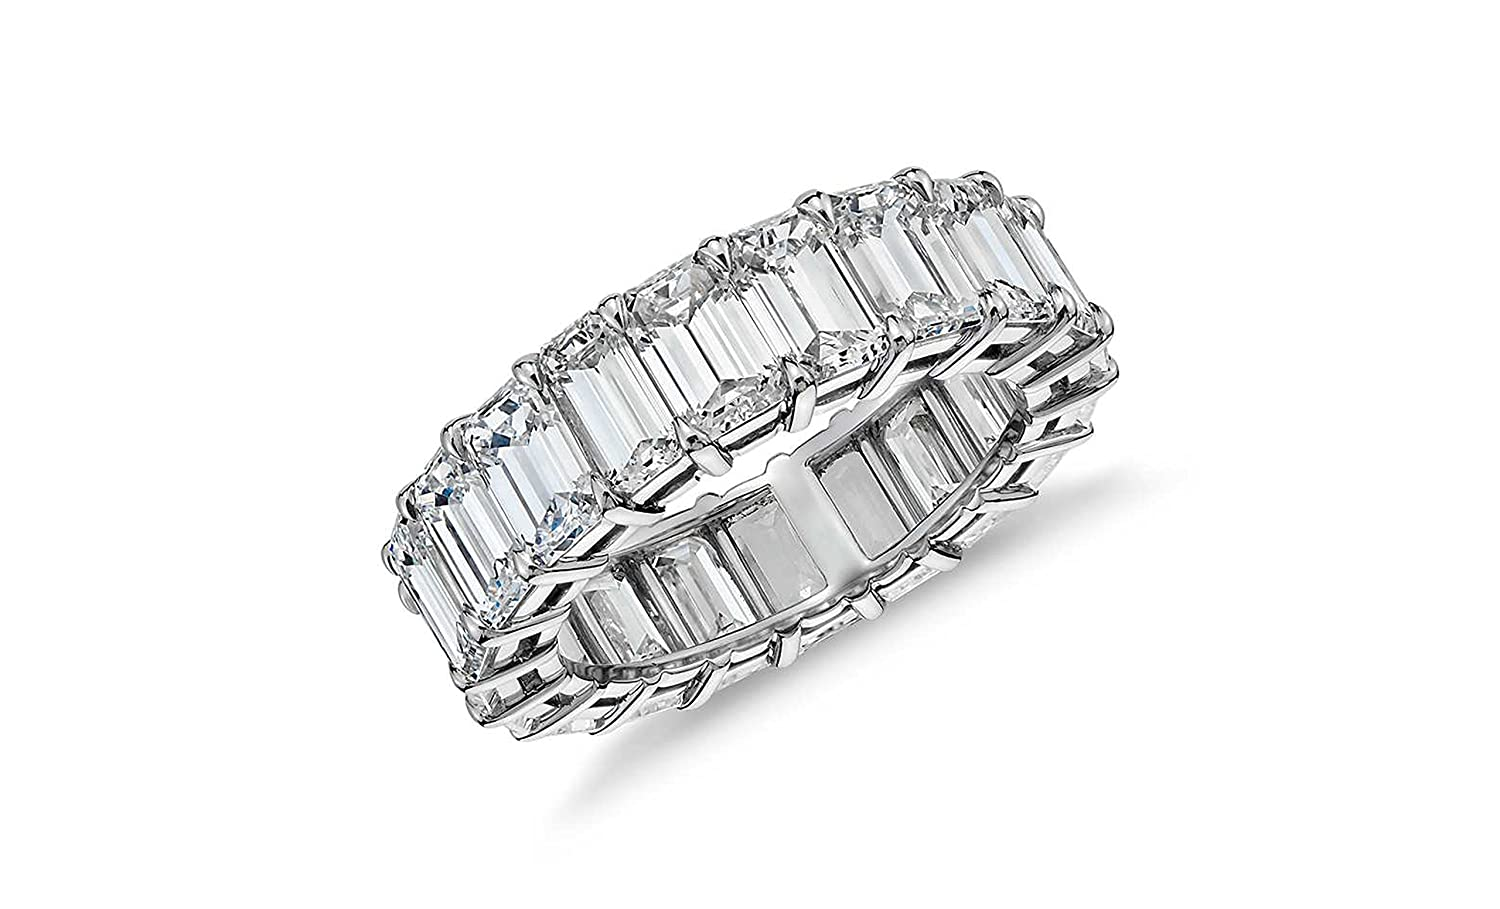 Sterling Silver Emerald Cut Eternity Band Cz Ring - Beautifully Crafted Eternity Ring Emerald Cut Cz Stones NYC Sterling